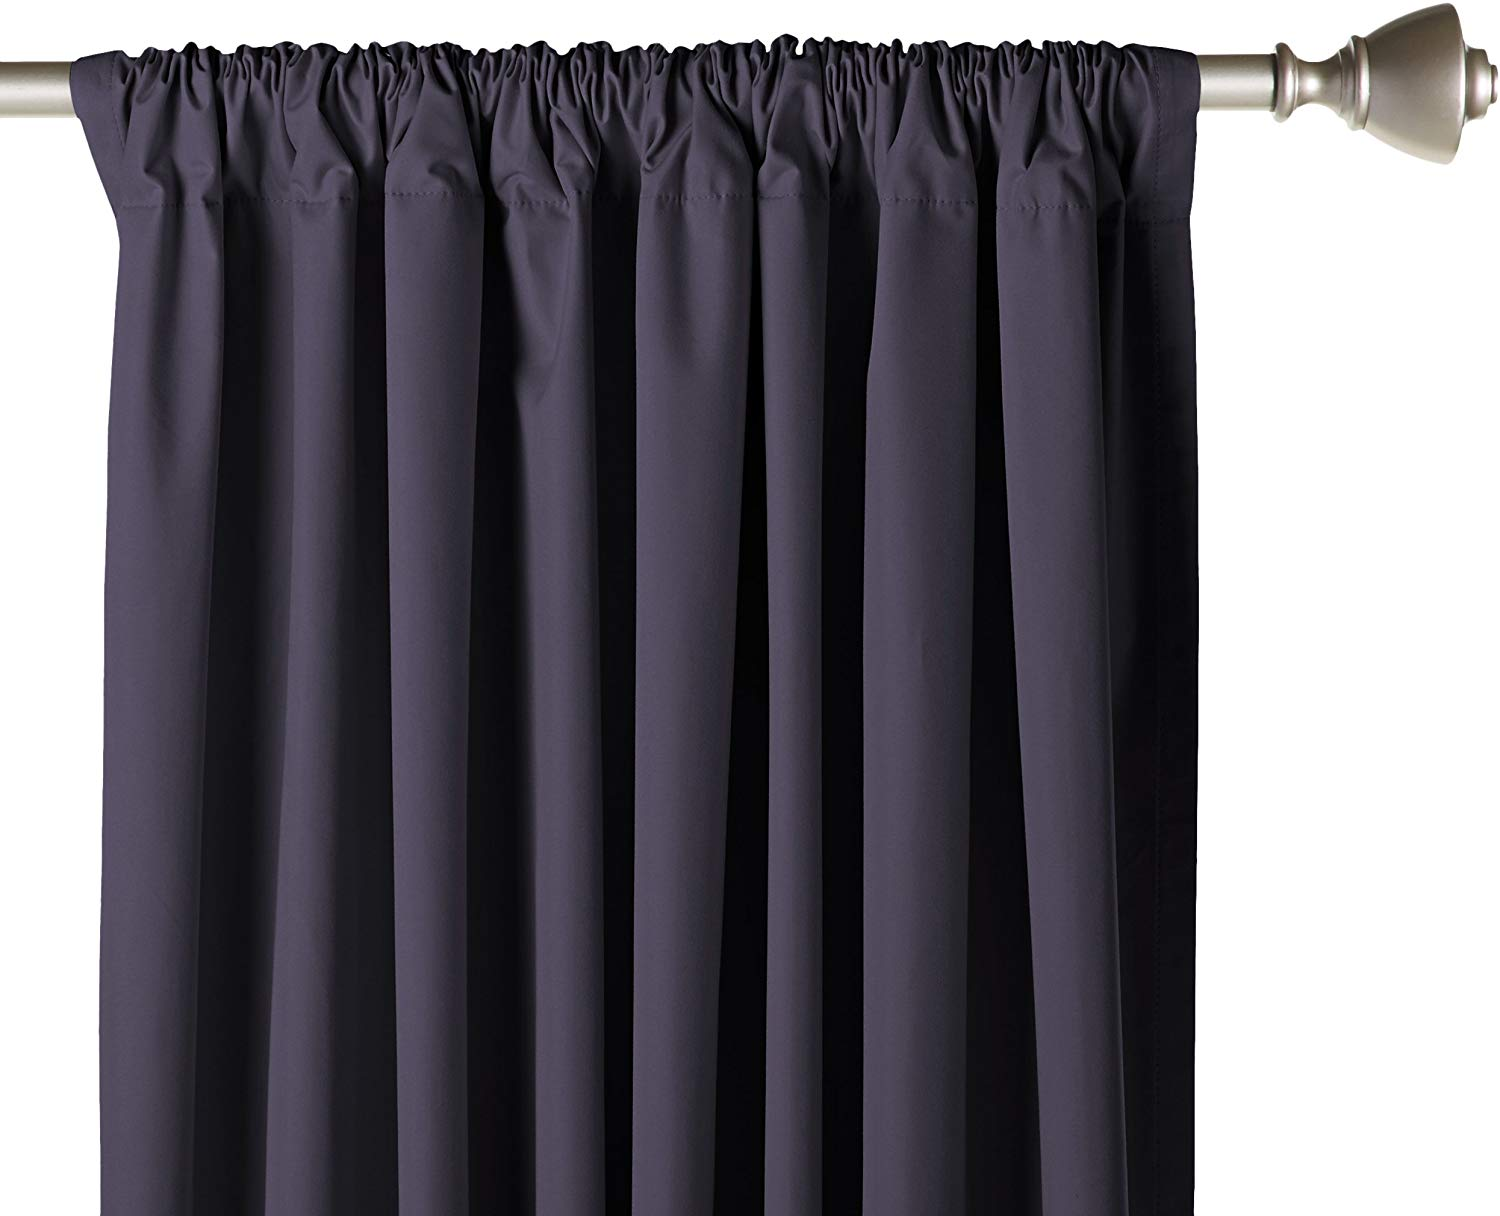 AmazonBasics Room Blackout Window Panel Curtains